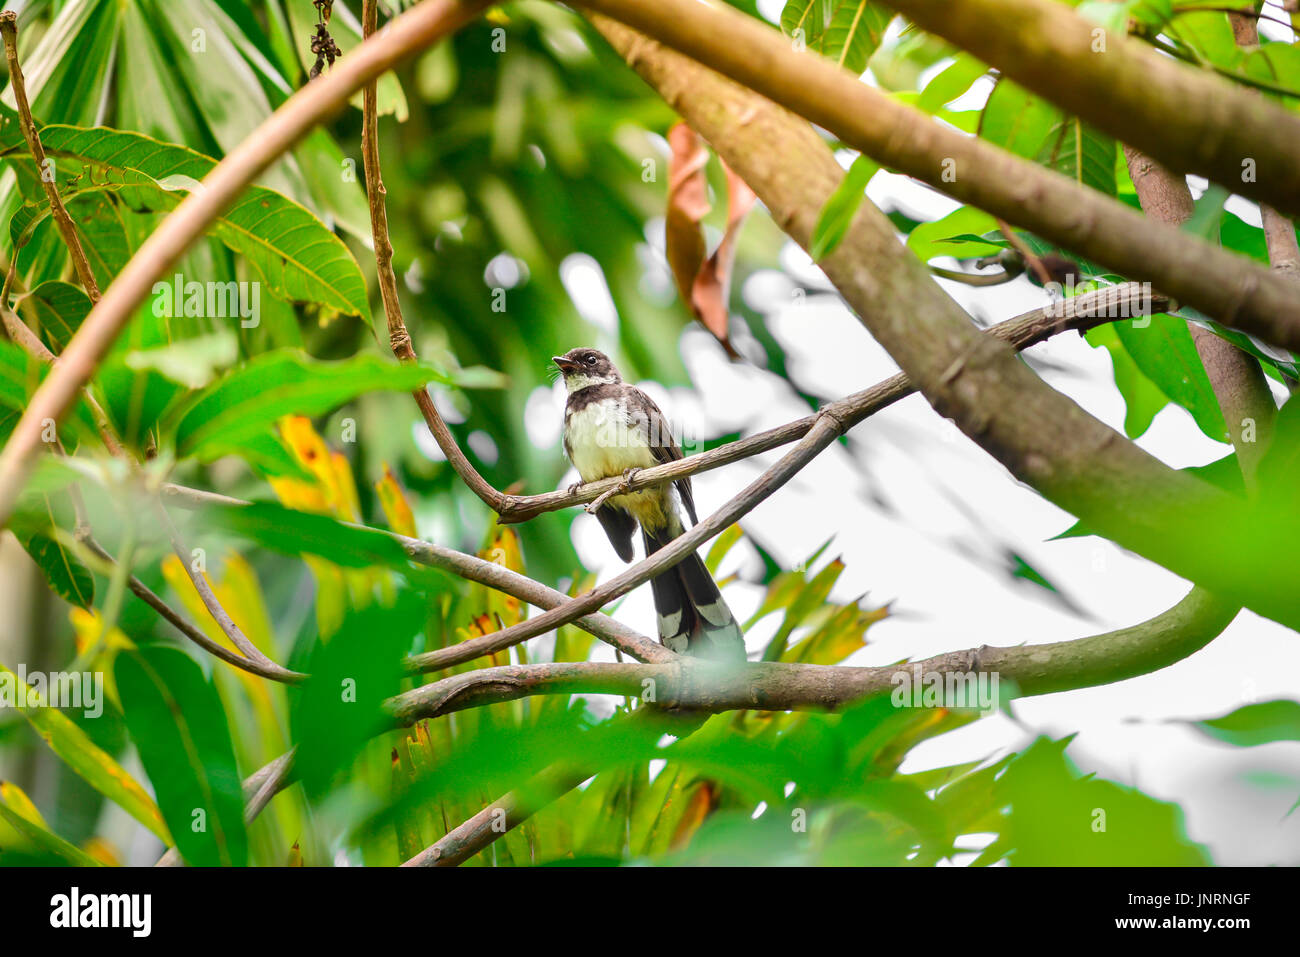 A bird on a green tree - Stock Image